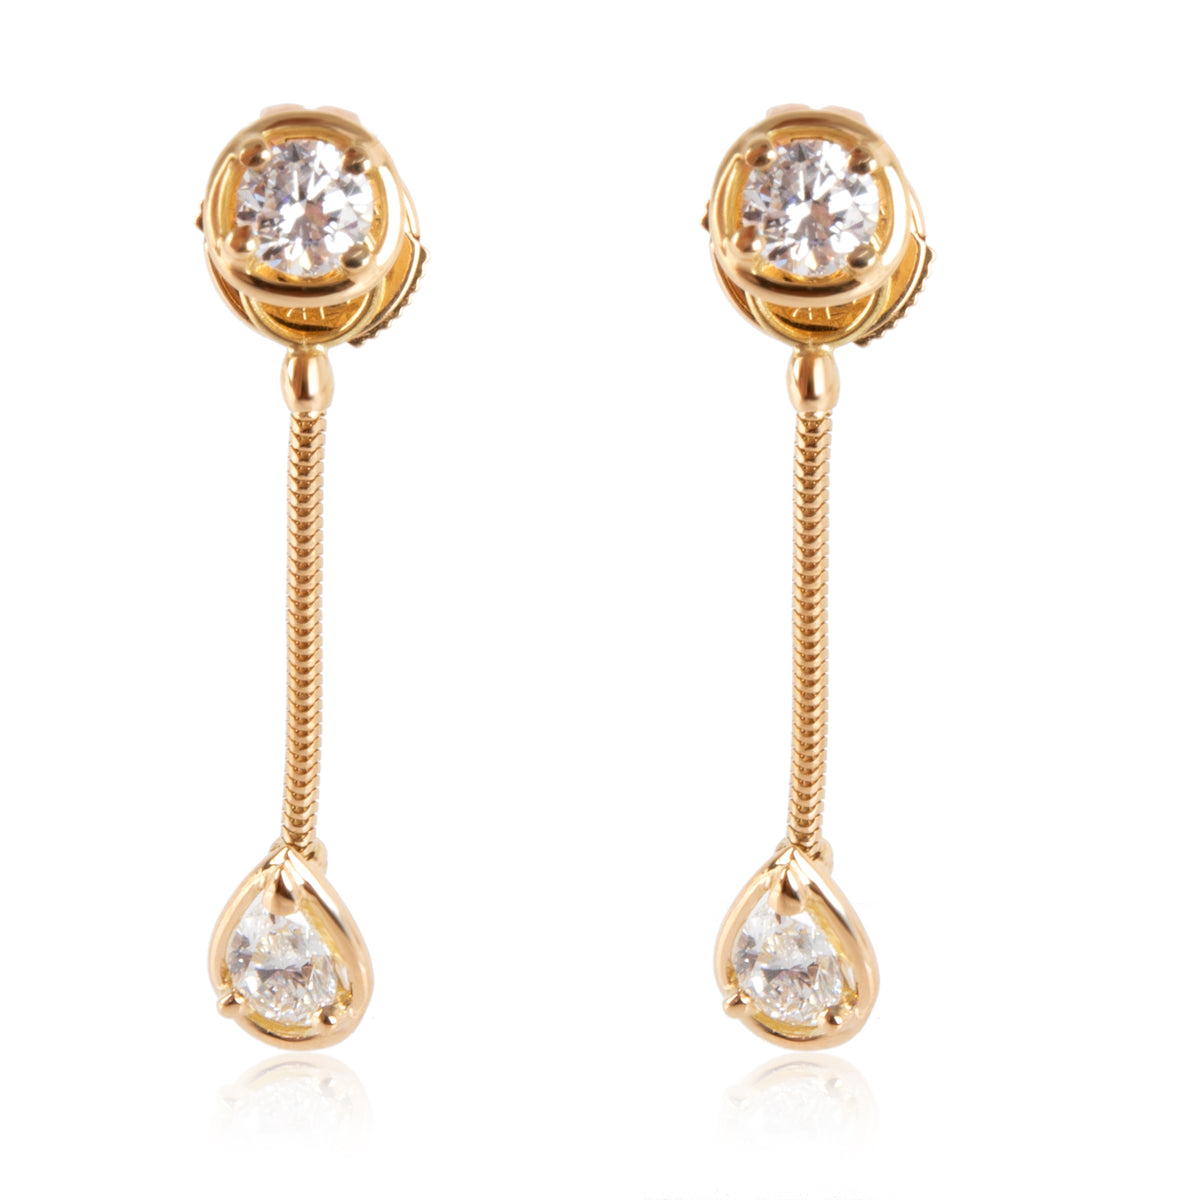 Van Cleef & Arpels La Pluie Diamond Drop Earrings in 18K Yellow Gold D VVS1 1